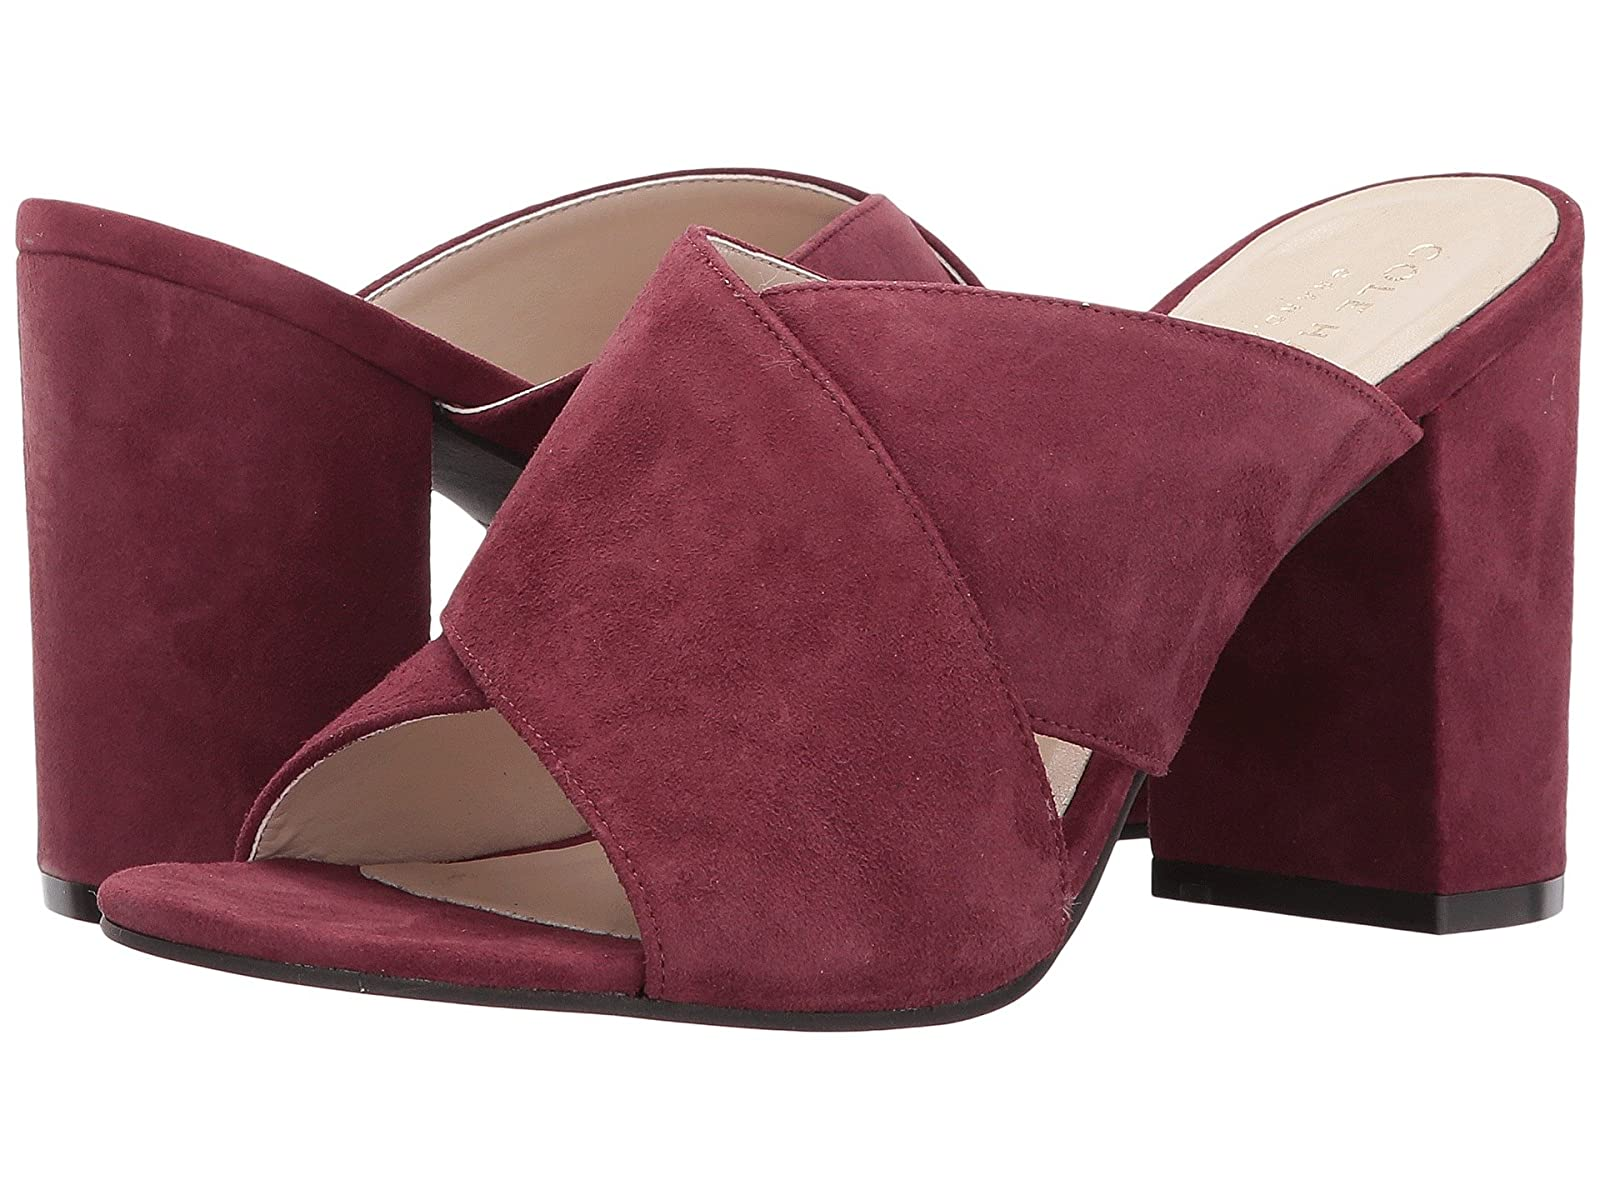 Cole Haan Gabby SandalCheap and distinctive eye-catching shoes